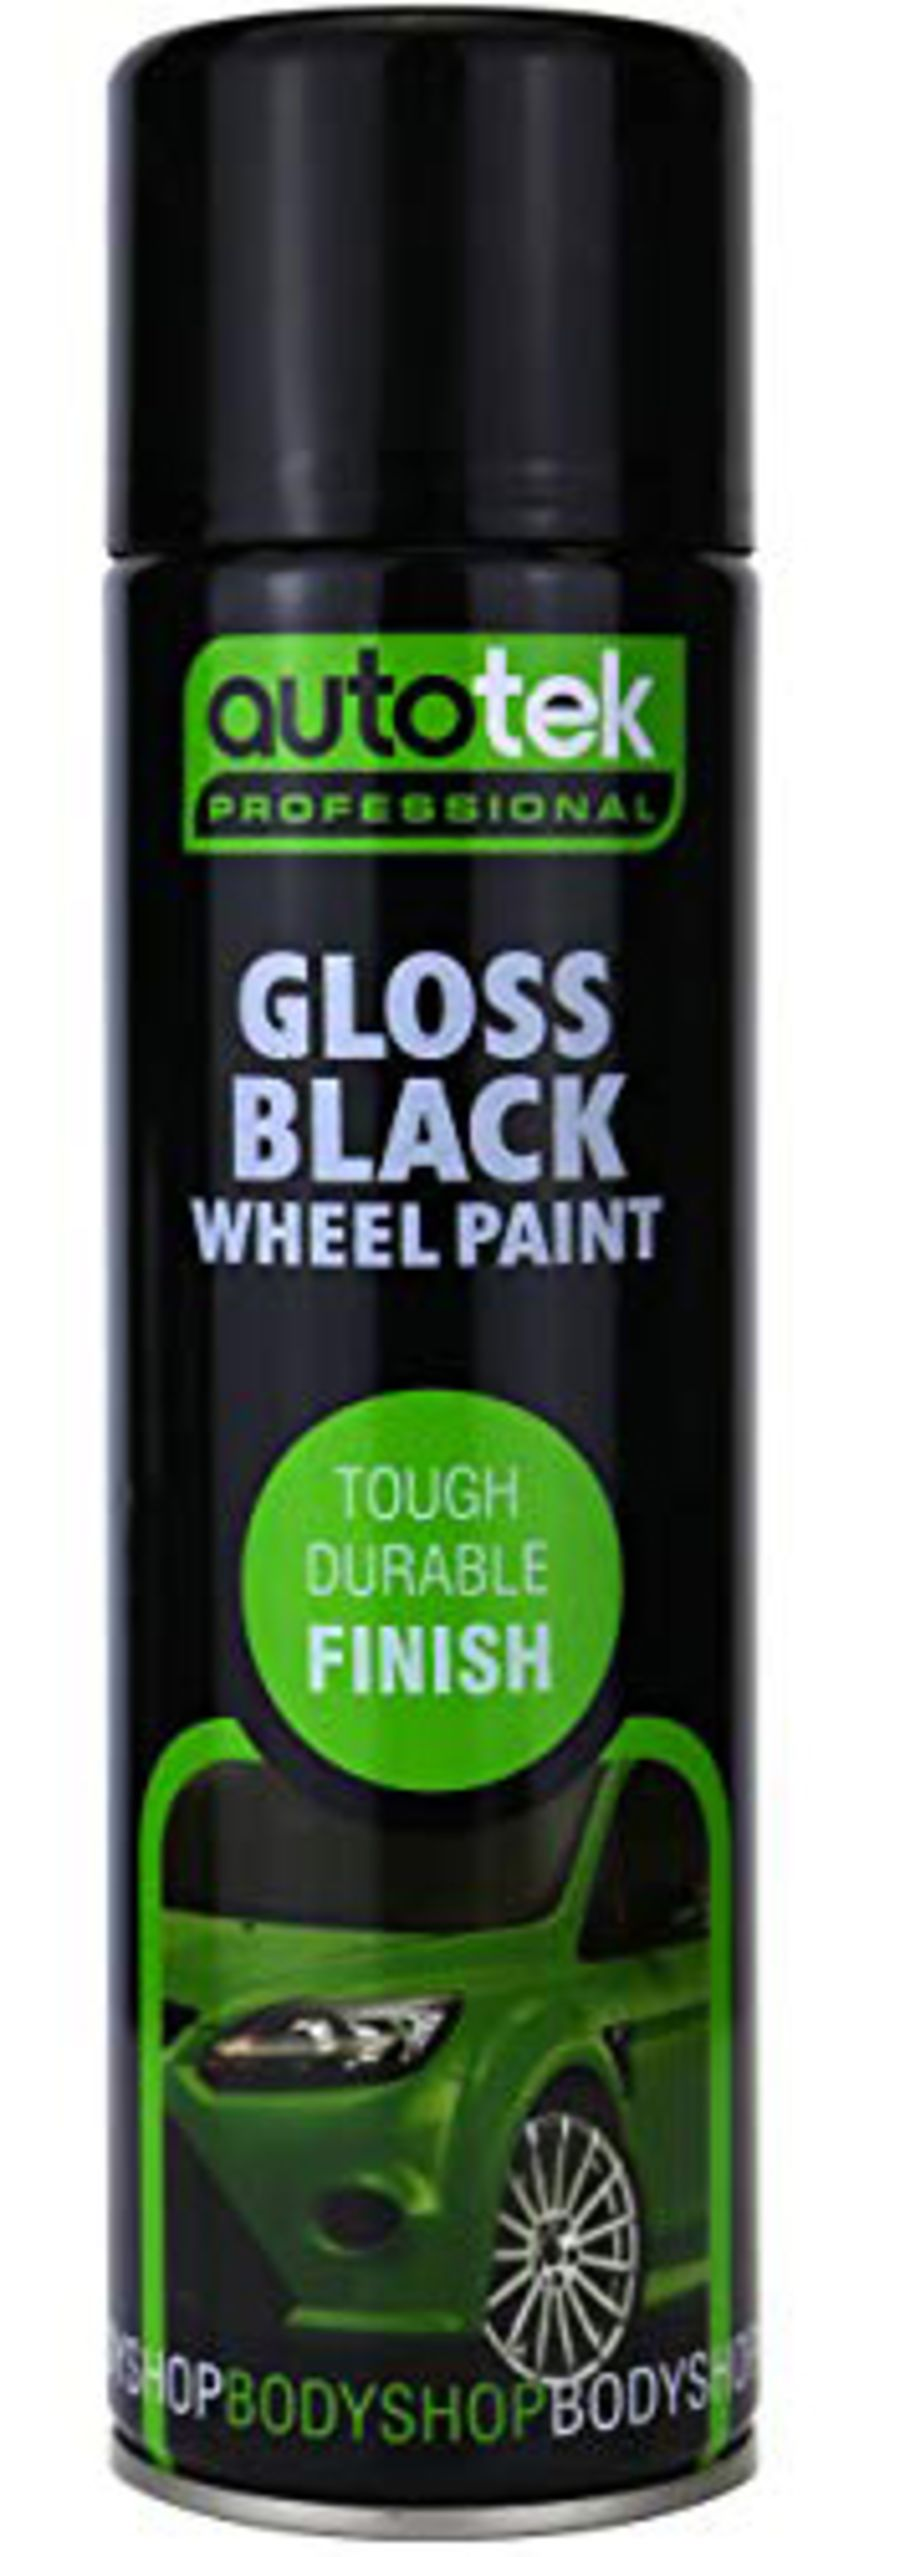 Gloss Black Wheel Paint - 500ml